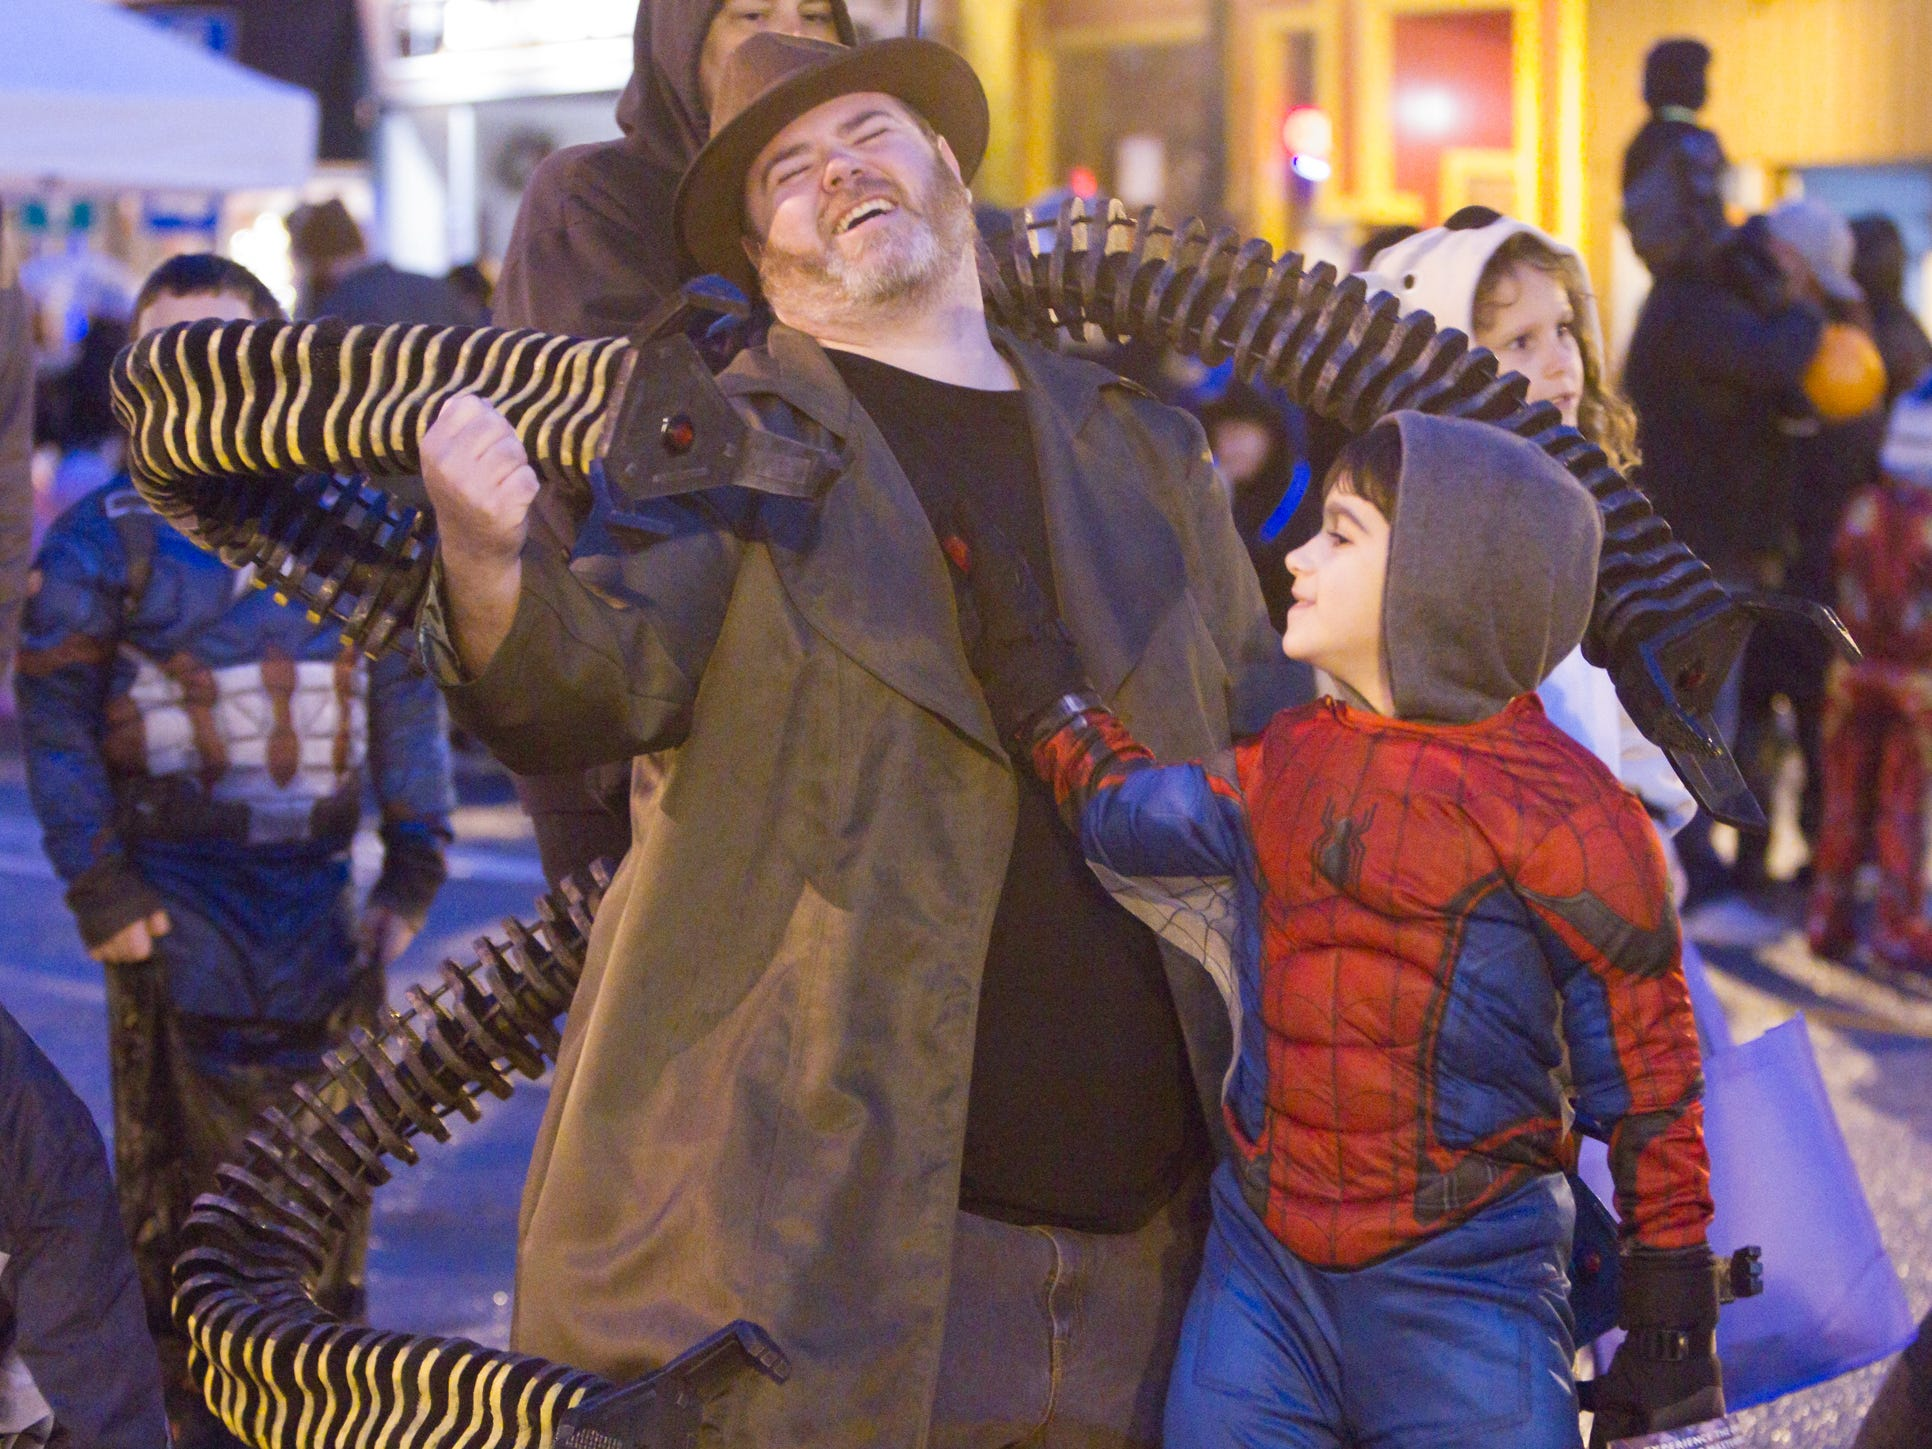 8-year-old Xavier Cooley as Spiderman puts some hurt on dad Tim Cooley as Dr. Octopus at the Legend of Sleepy Howell Saturday, Oct. 27, 2018.